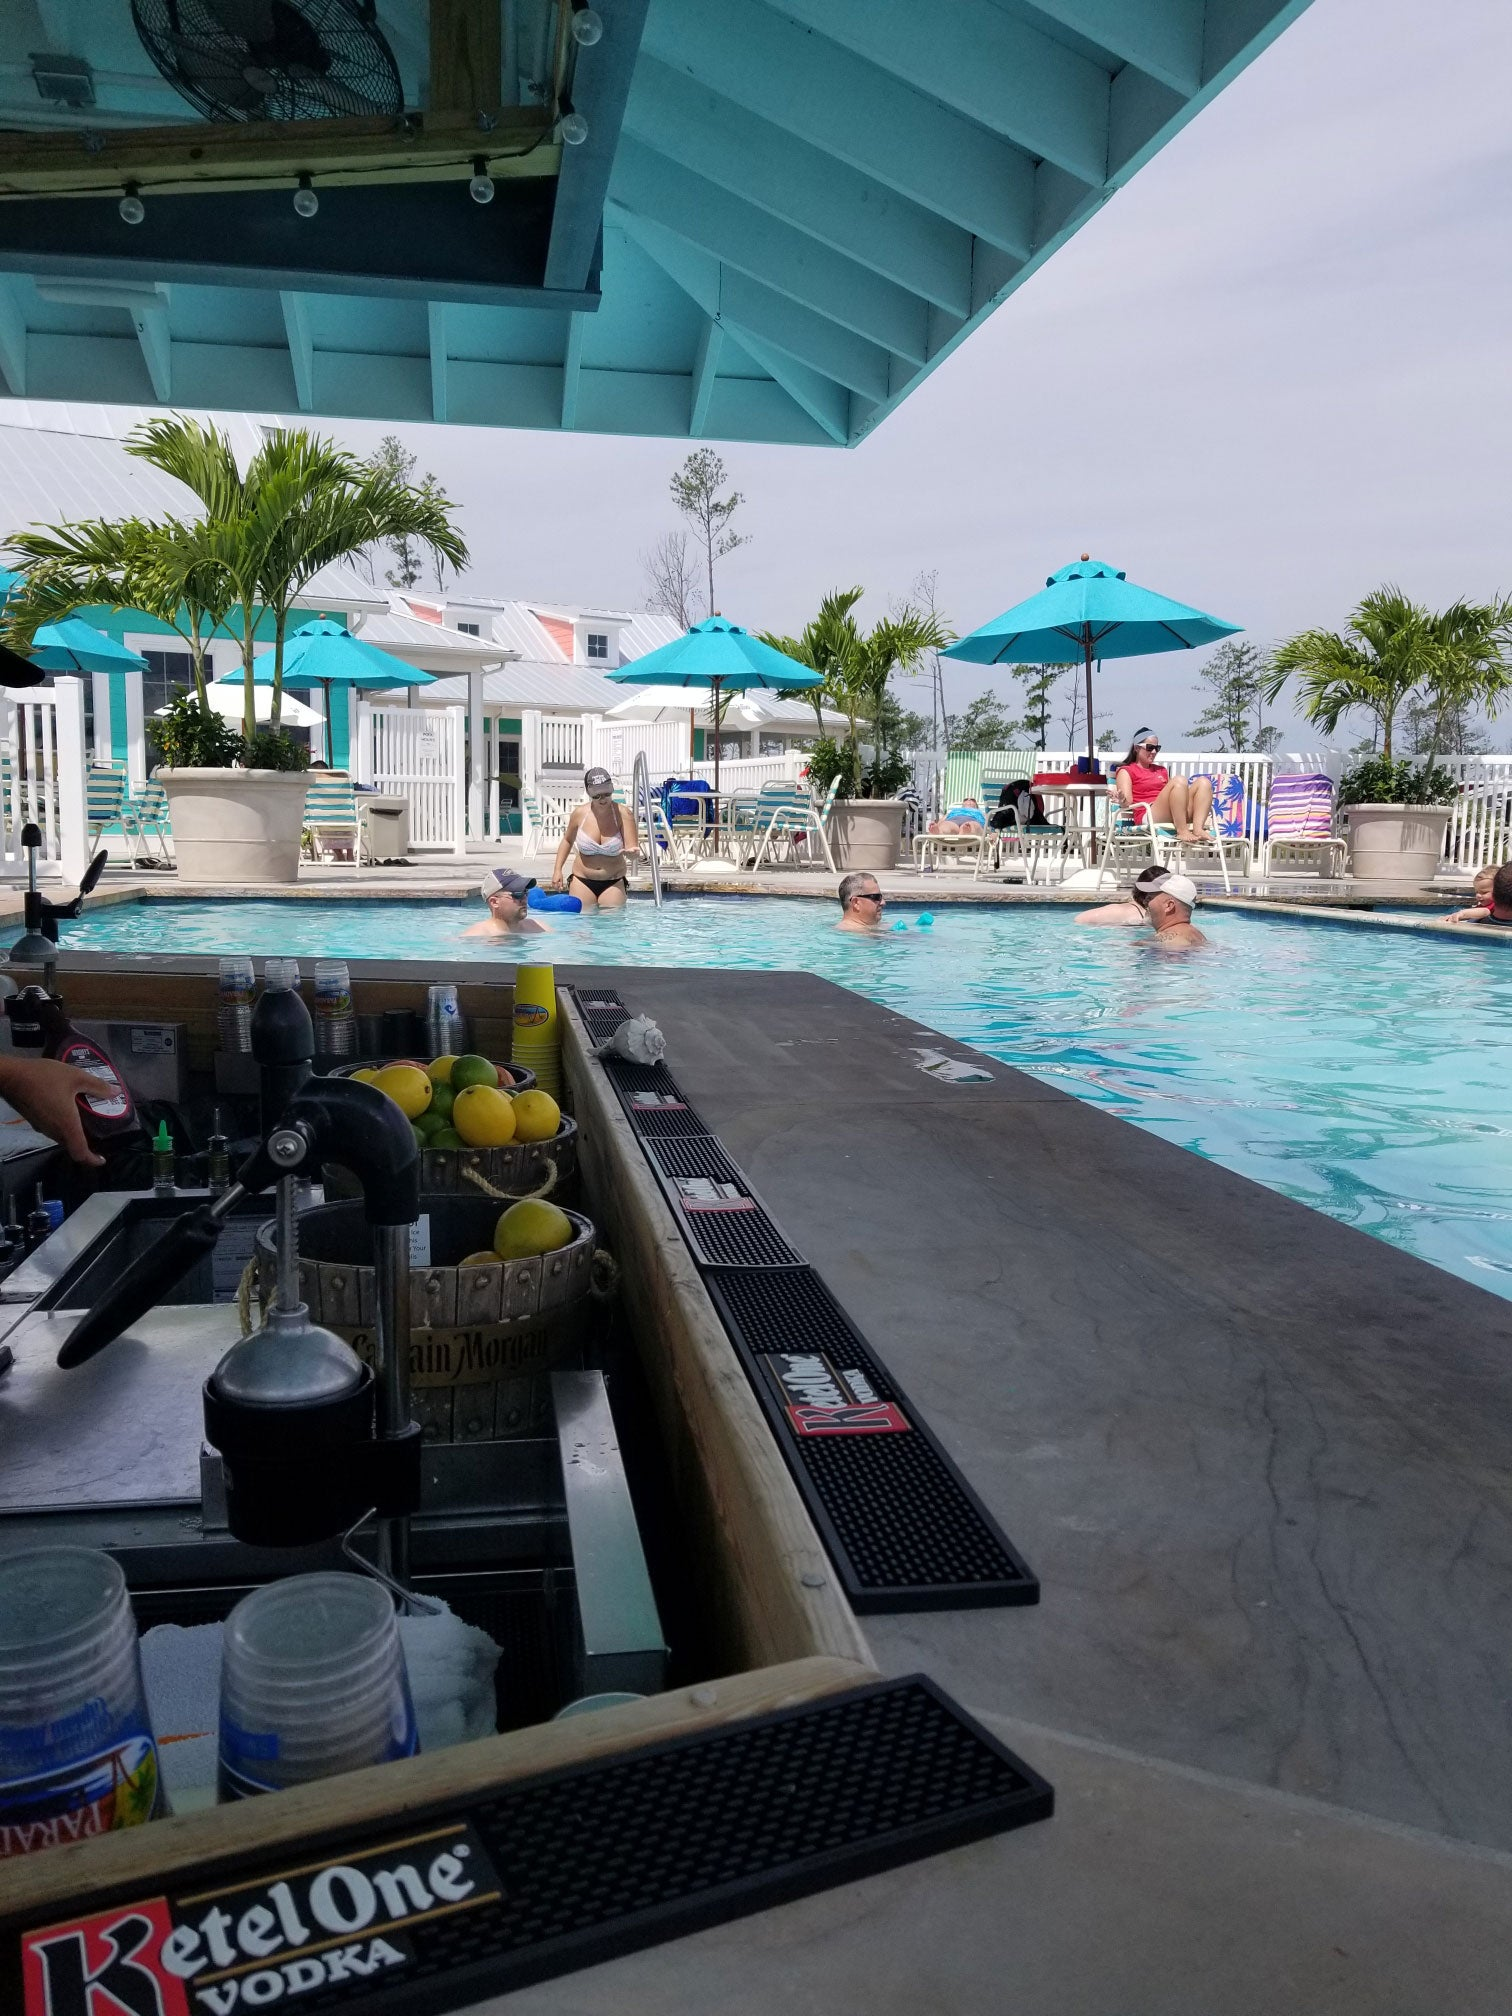 Swimming in the Caribbean-inspired pool with a swim-up bar at Massey's Landing